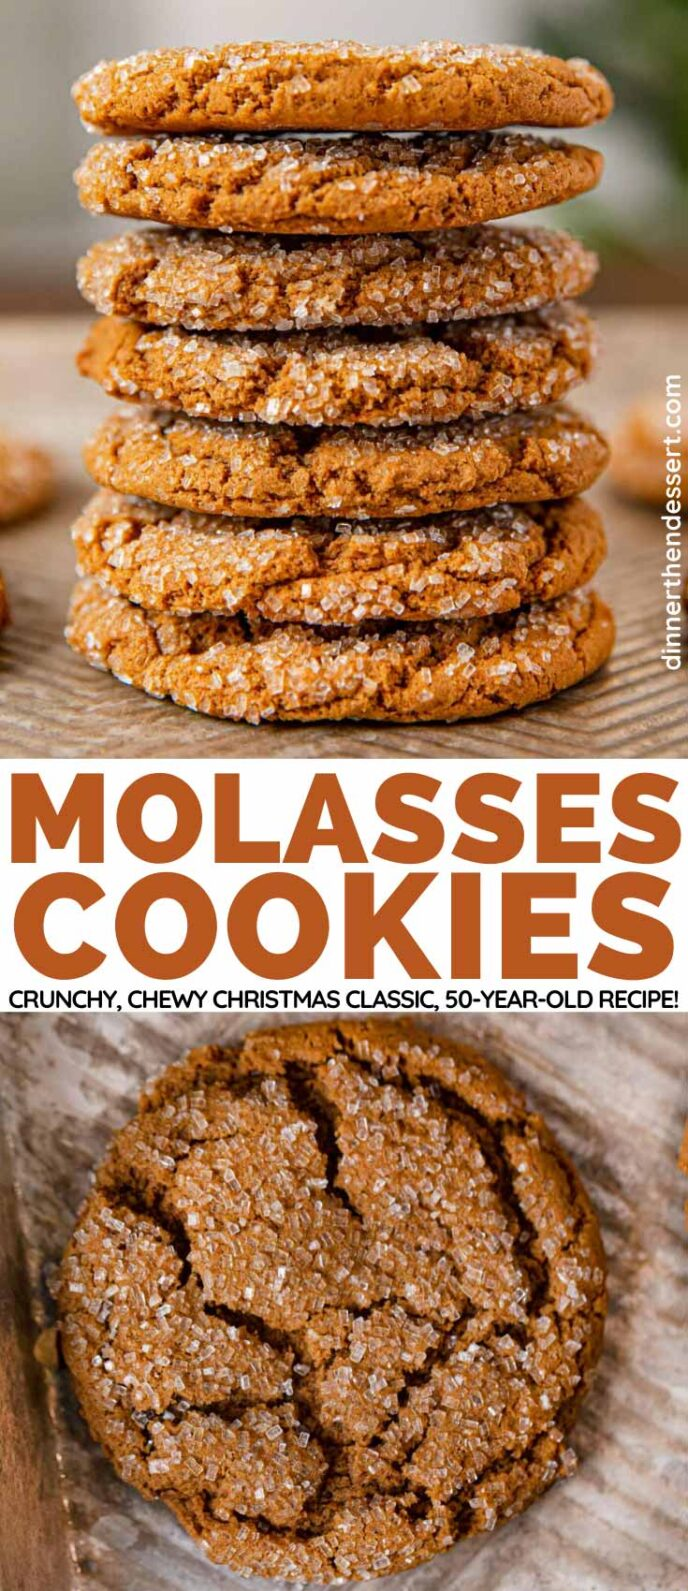 Molasses Cookies collage